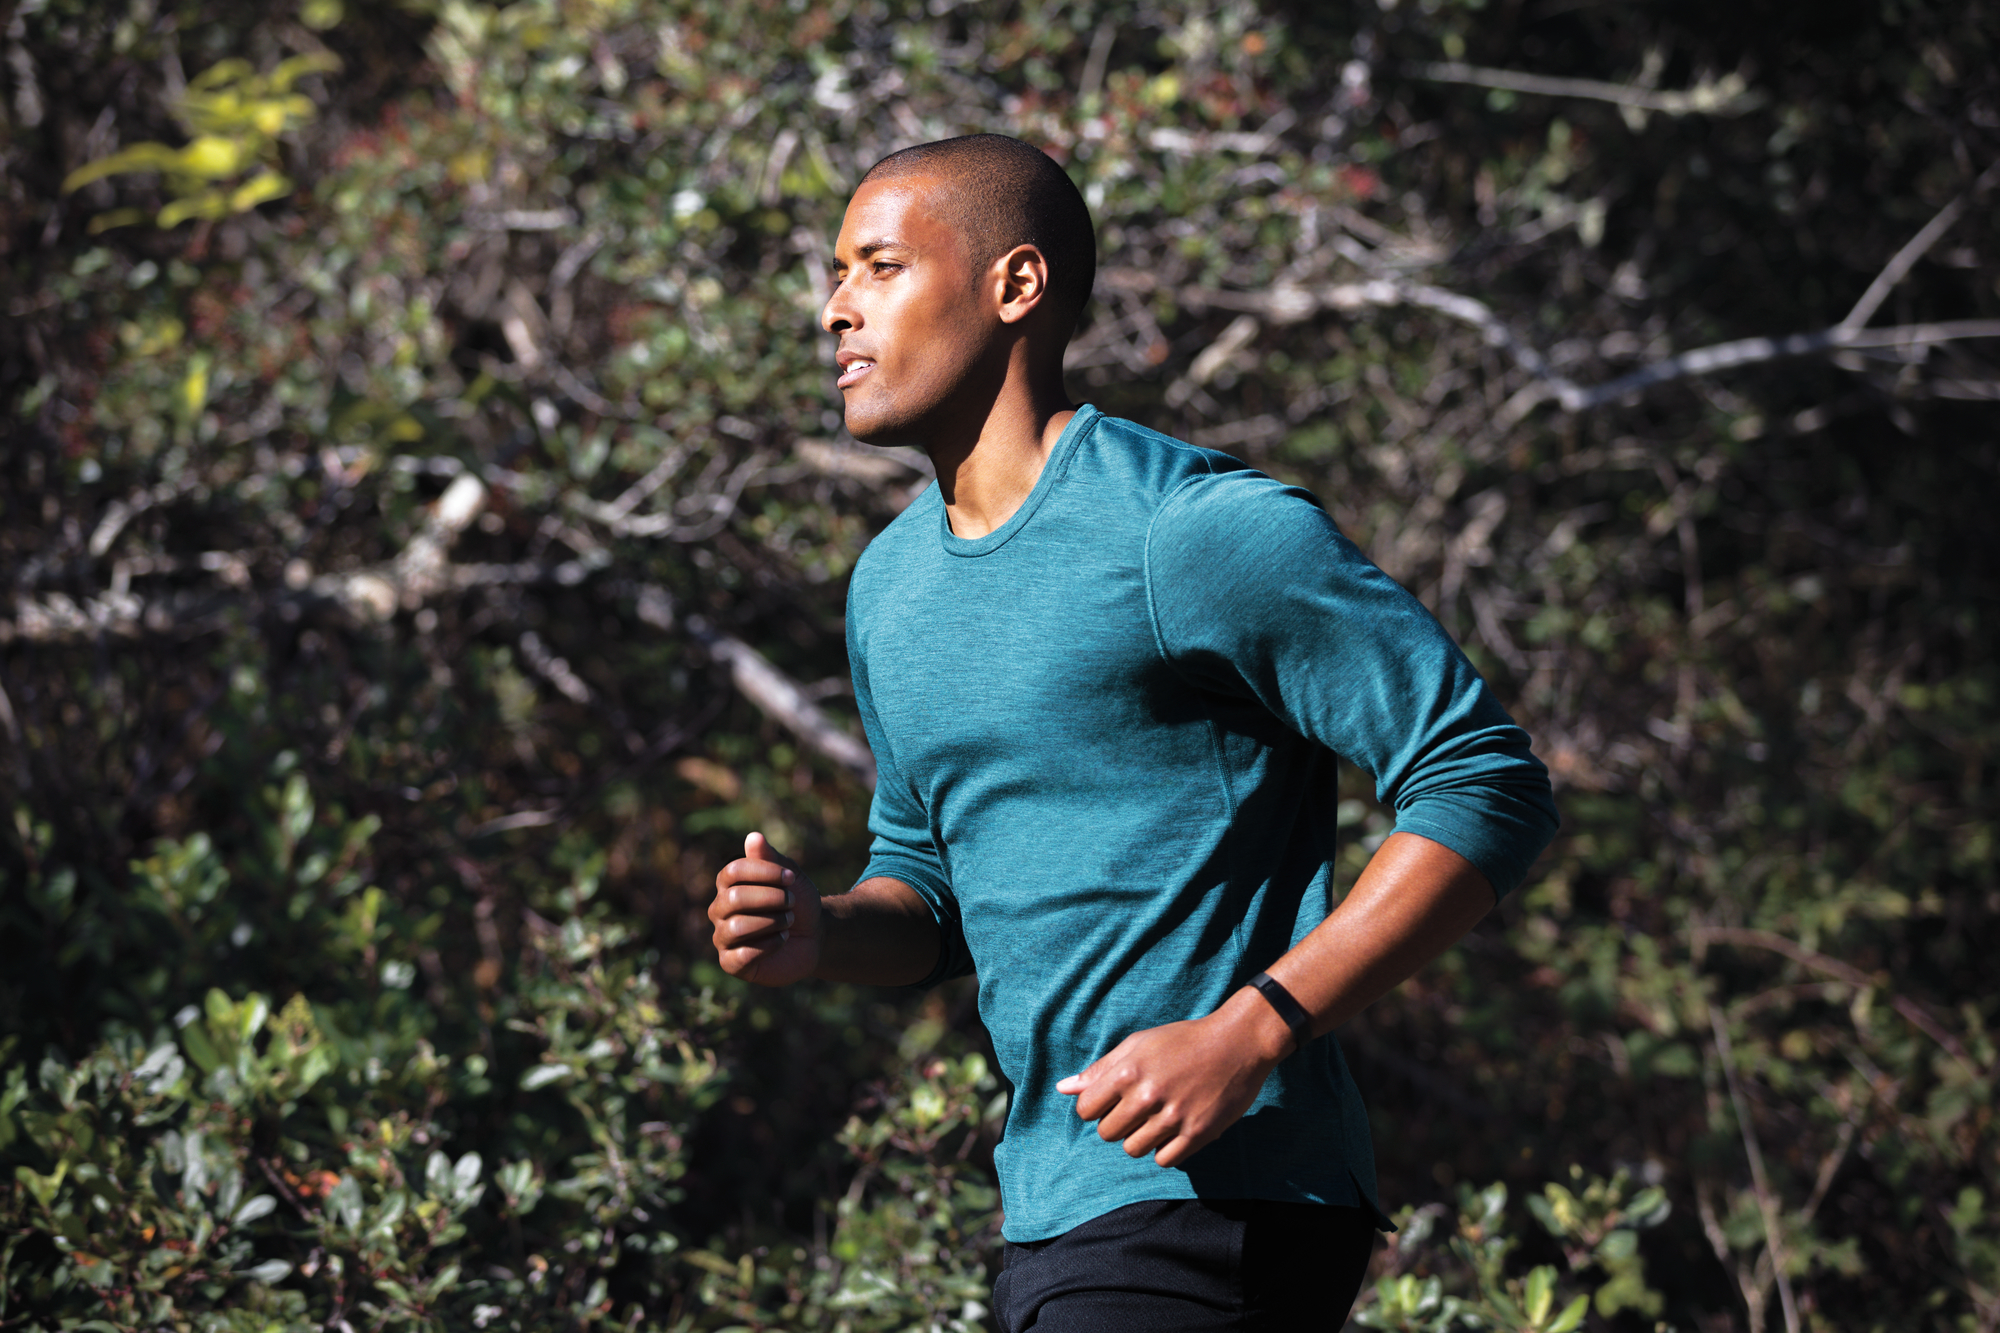 Alta HR lifestyle shot featuring a man running while wearing the special edition Alta HR in gunmetal.